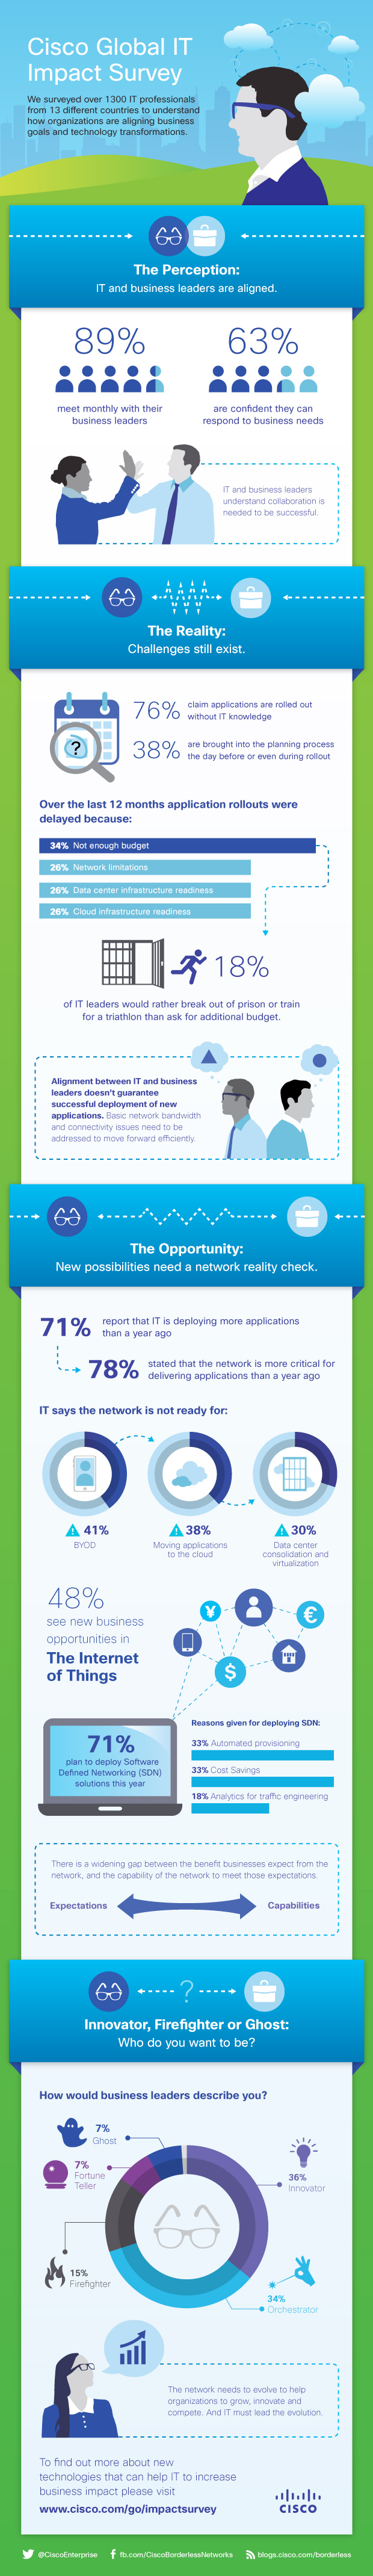 Cisco Global IT Impact Survey Infographic